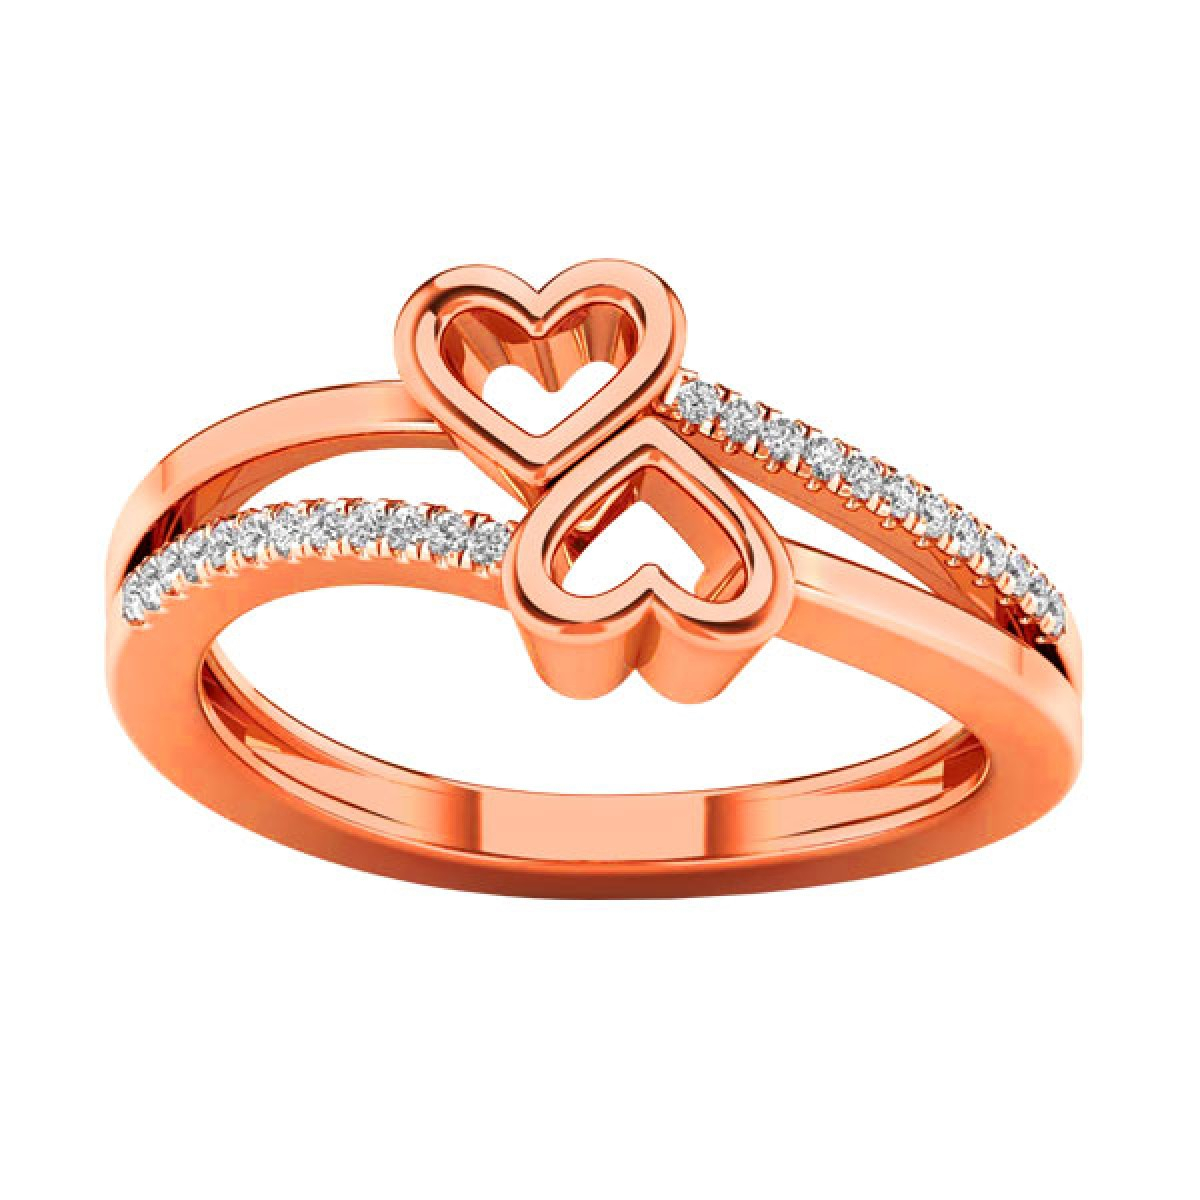 Harris Jewelry – Serving Those Who Serve Within Latest Two Sparkling Hearts Rings (Gallery 20 of 25)